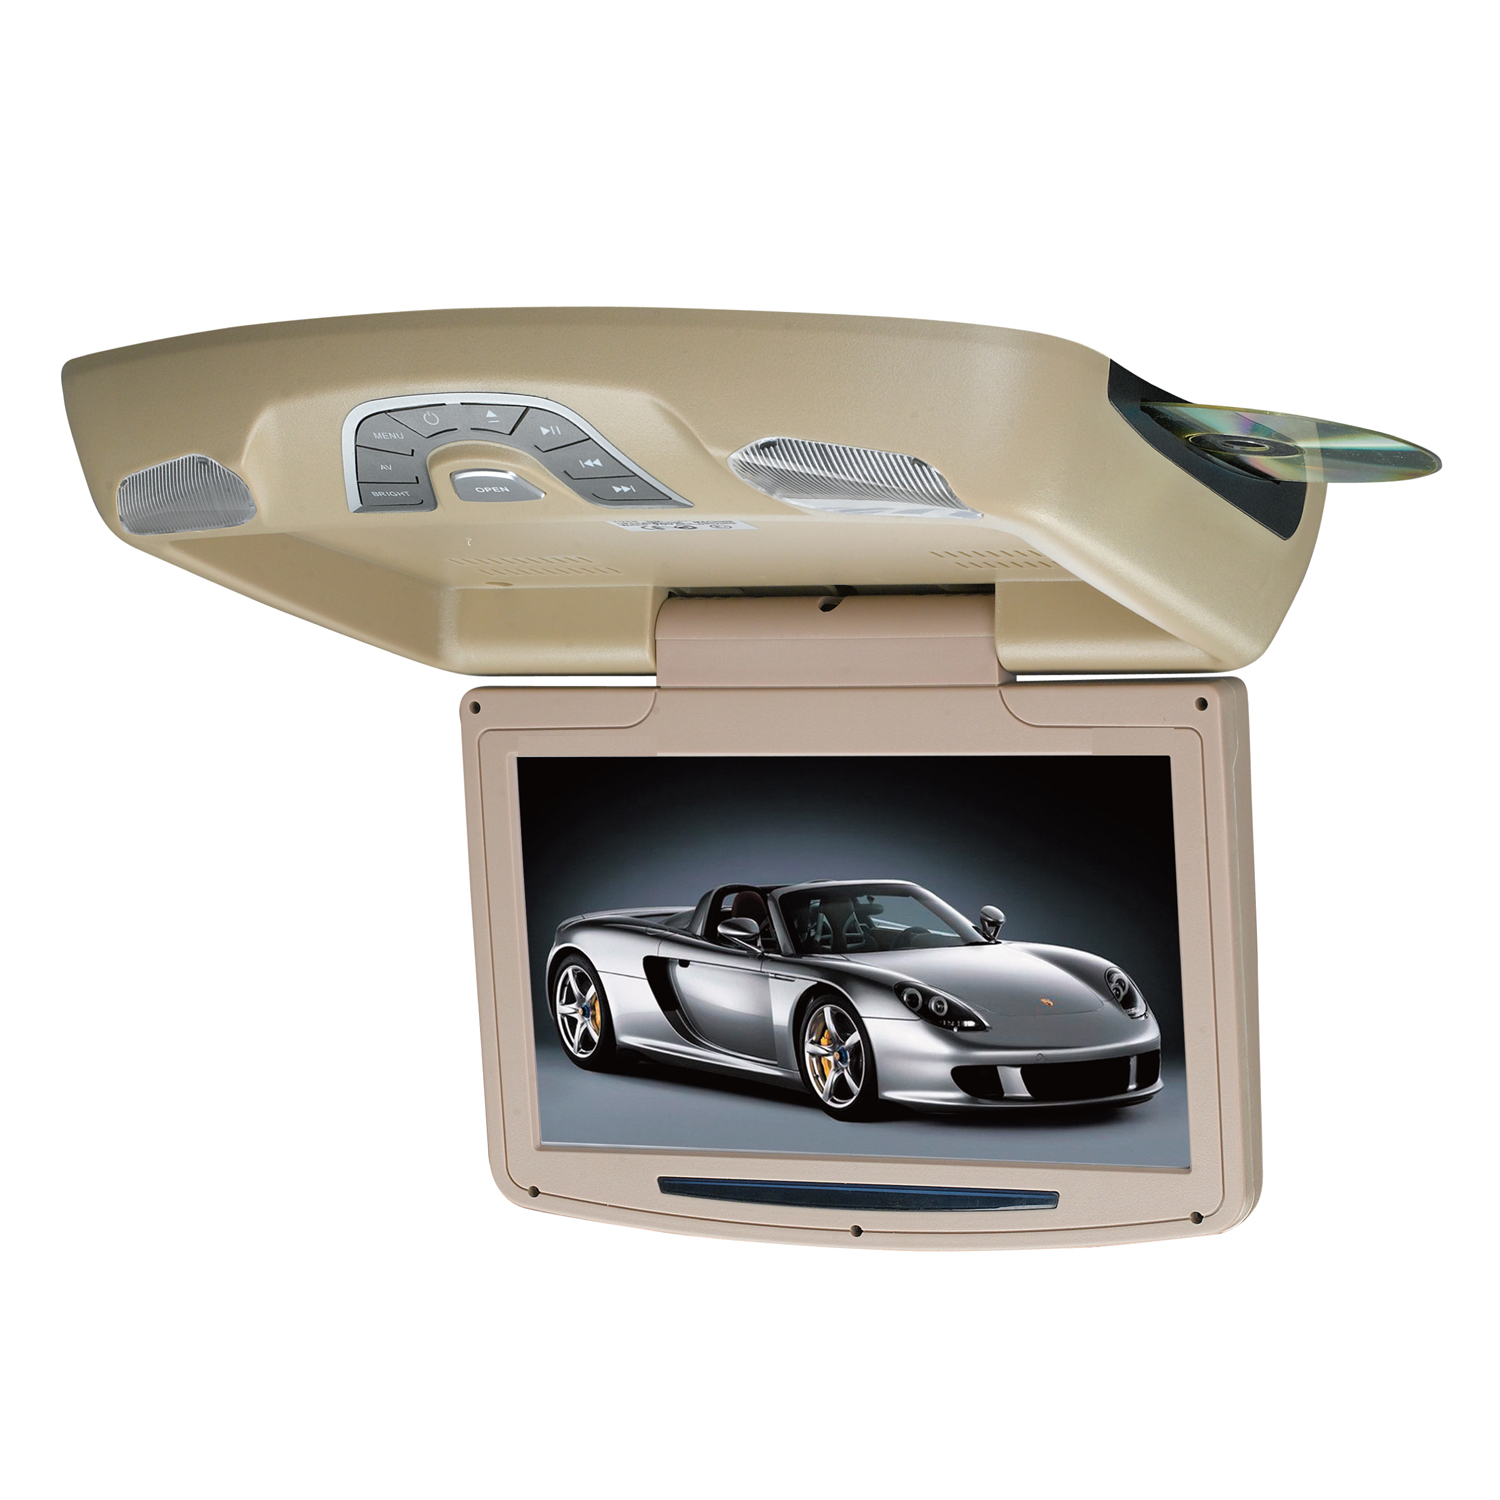 15 6 Dvd Player Roof Mount In Car Flip Down Monitor Hdmi Suit 12v 24v Vehicle